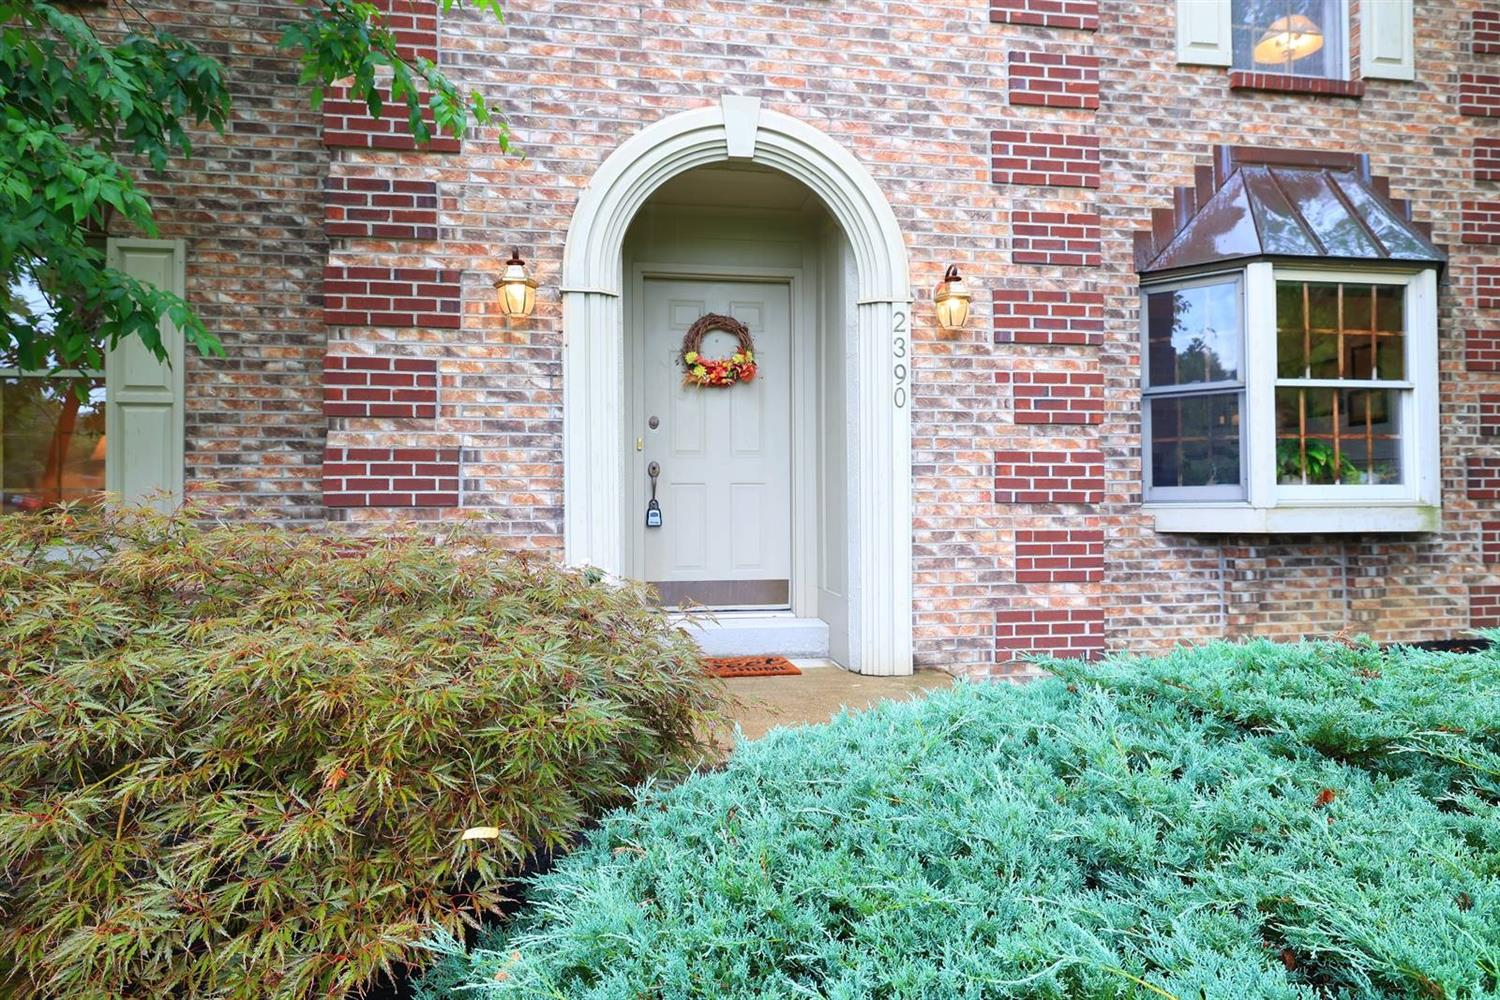 Charming keyhole front door!  Perfect backdrop for your Fall pumpkins and mums.